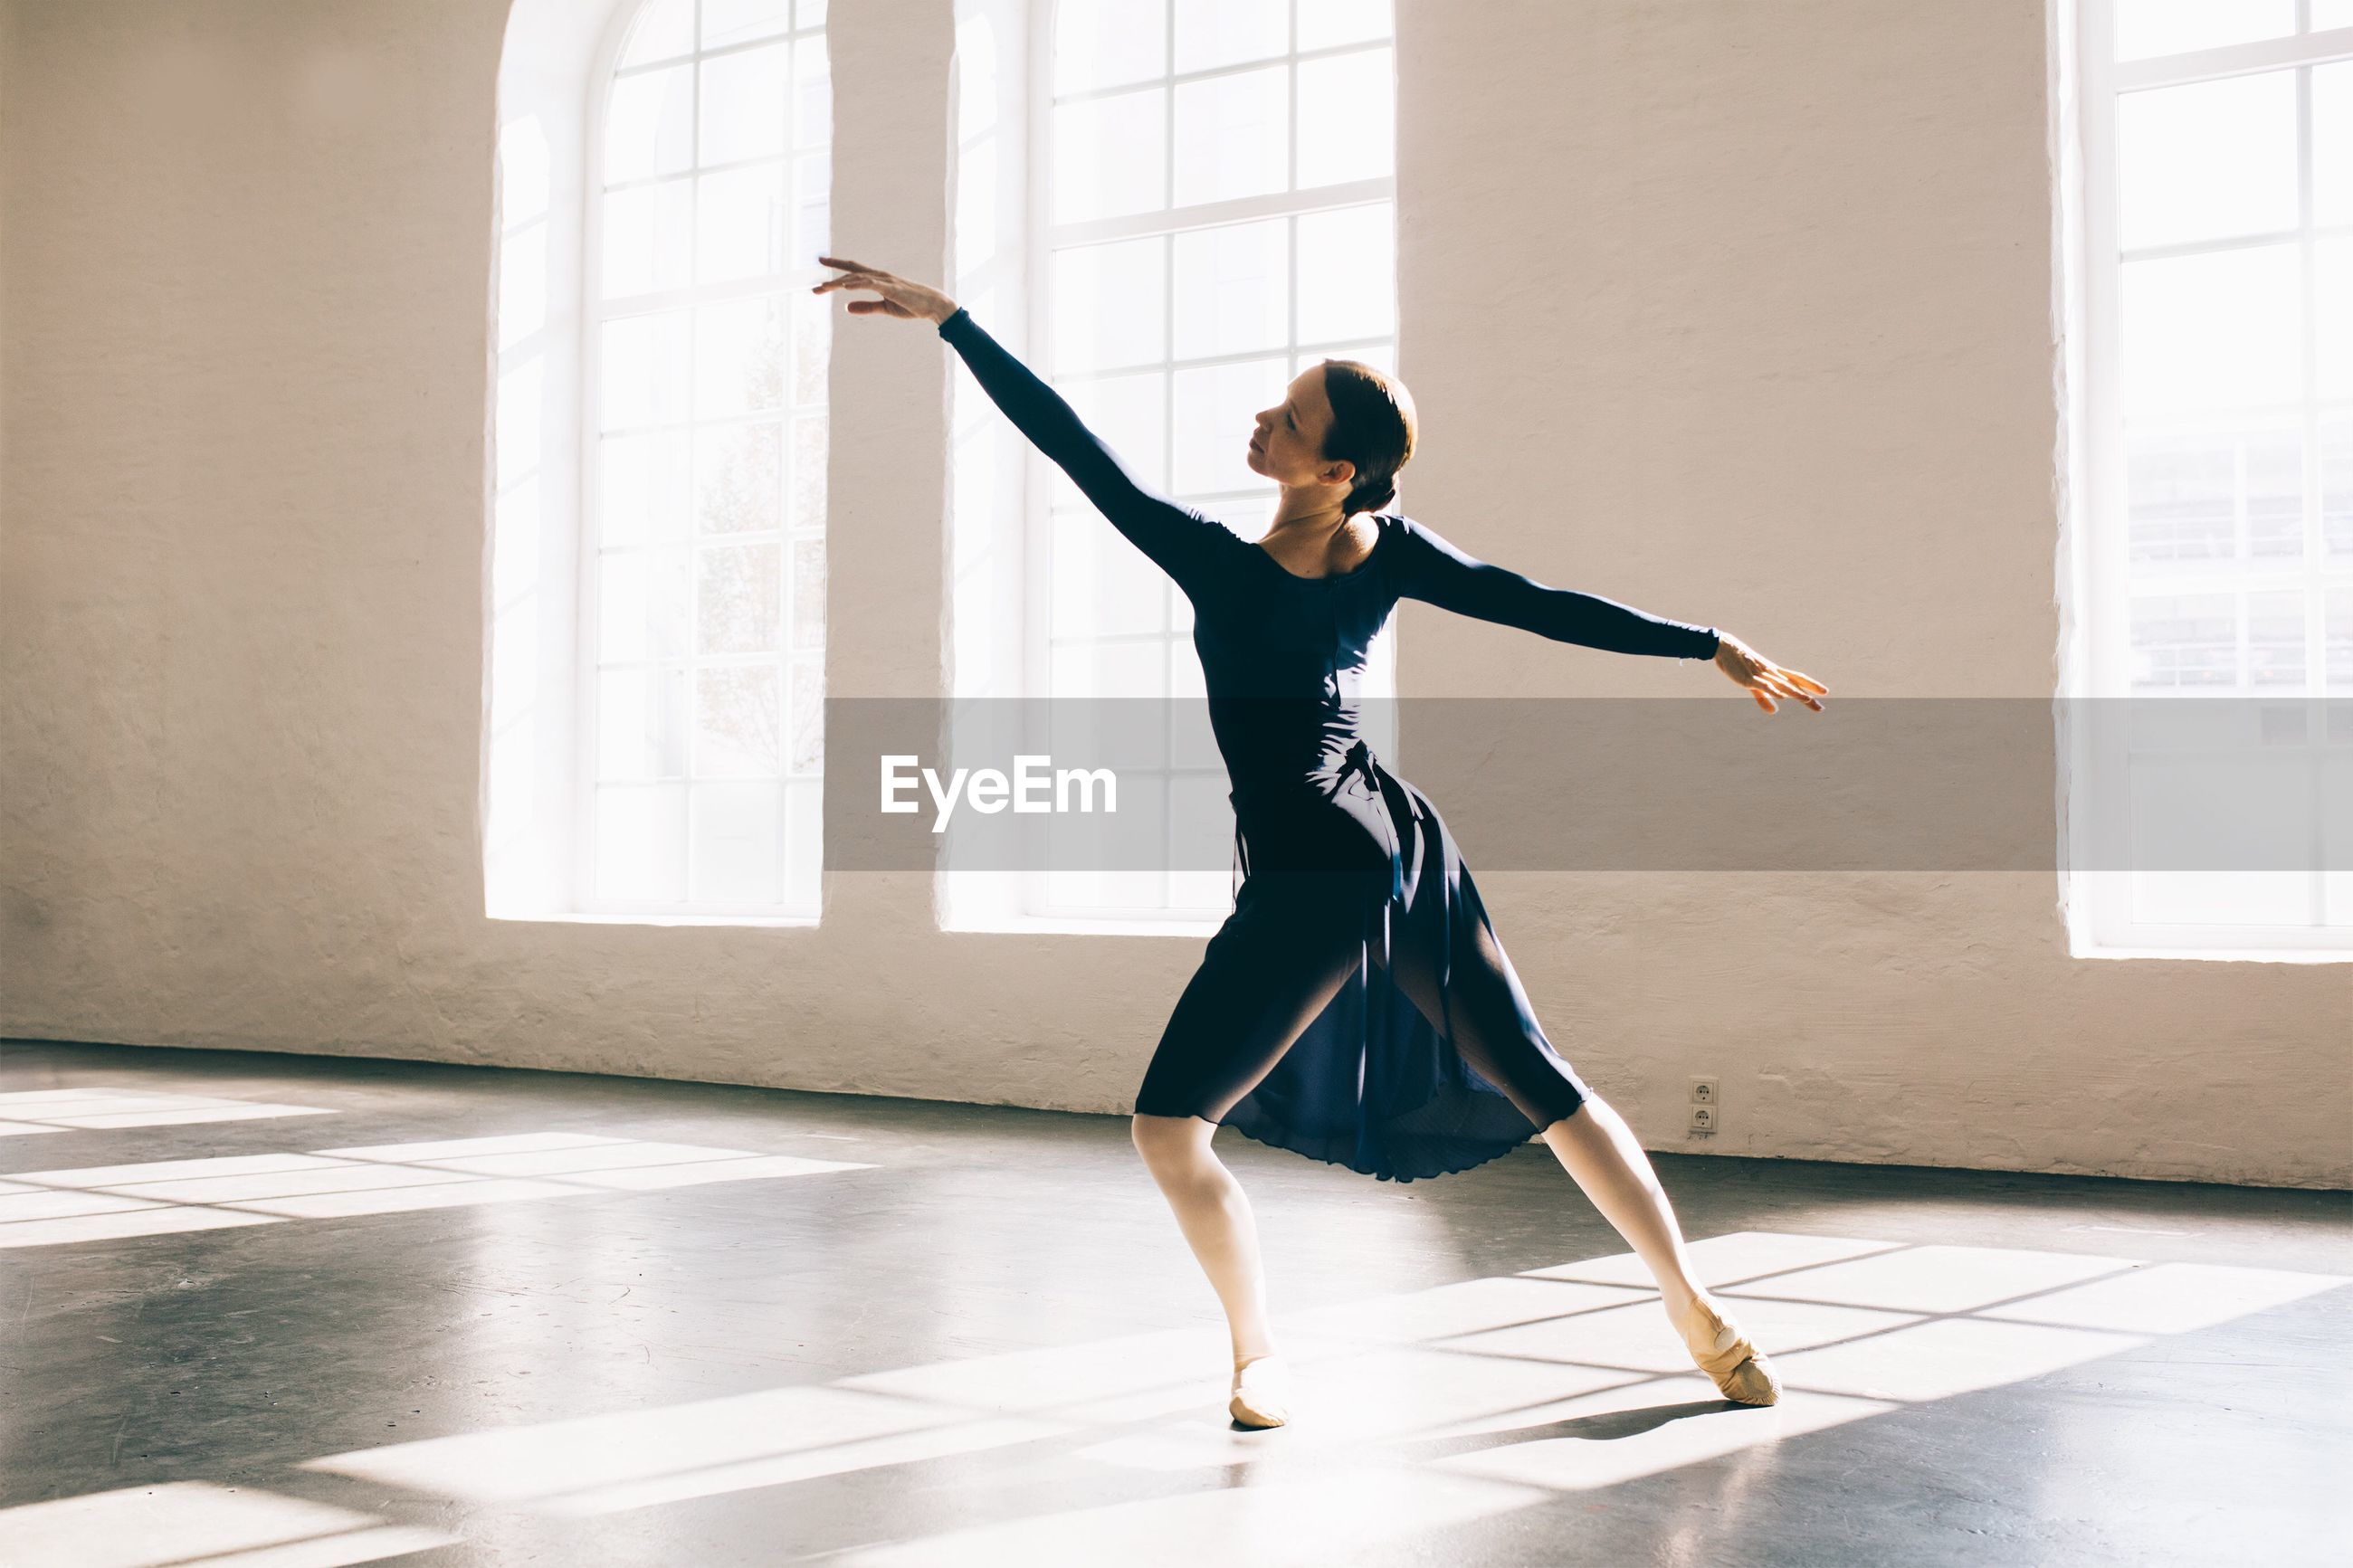 skill, real people, dancing, indoors, practicing, one person, full length, balance, leisure activity, lifestyles, expertise, dancer, ballet, women, ballet dancer, performance, standing, young women, young adult, day, architecture, people